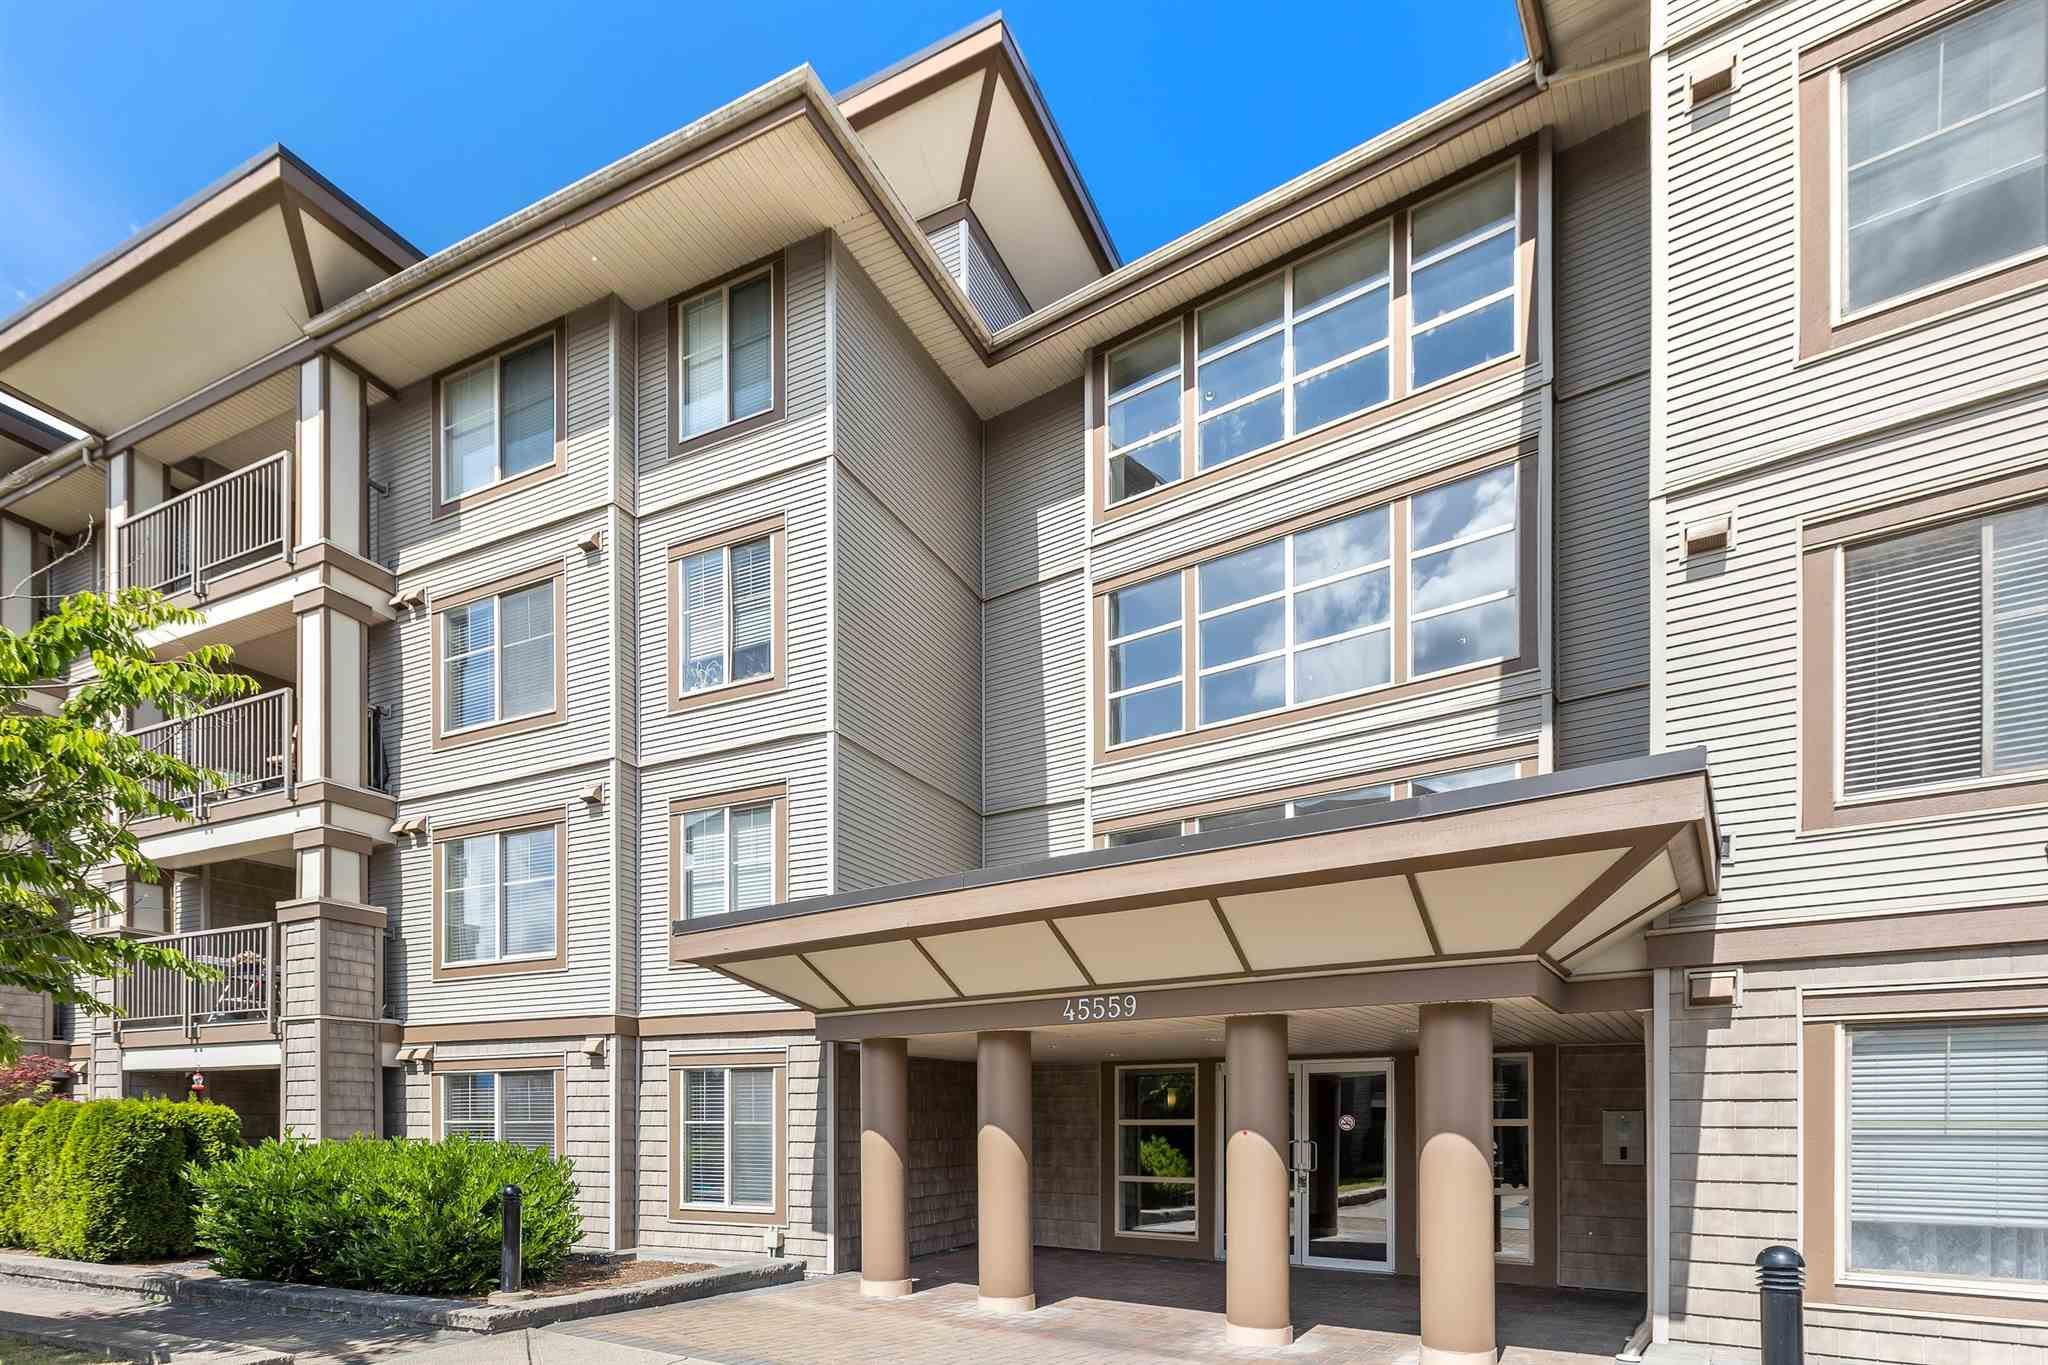 """Main Photo: 314 45559 YALE Road in Chilliwack: Chilliwack W Young-Well Condo for sale in """"THE VIBE"""" : MLS®# R2593839"""